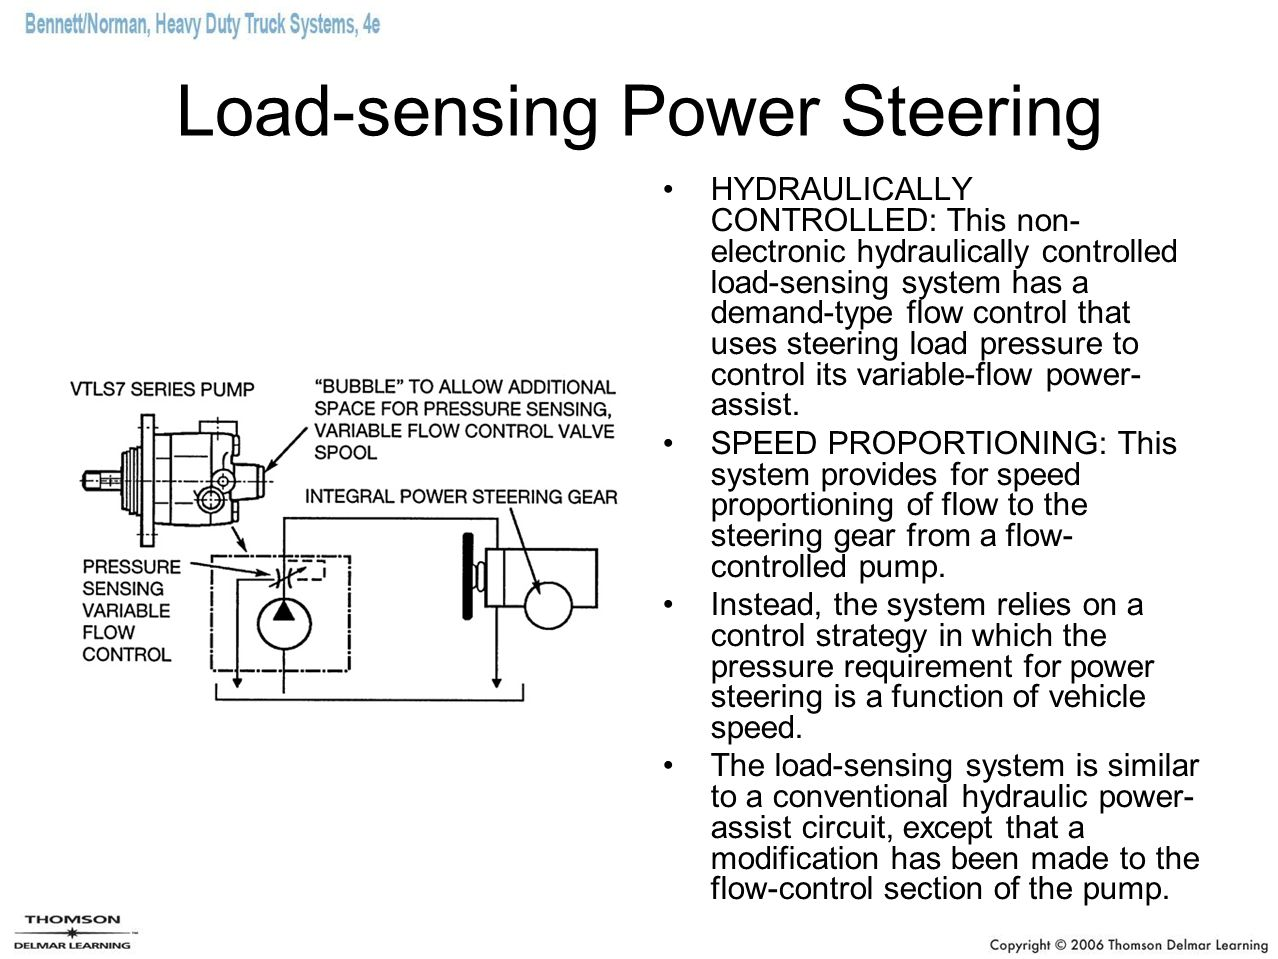 Load-sensing Power Steering